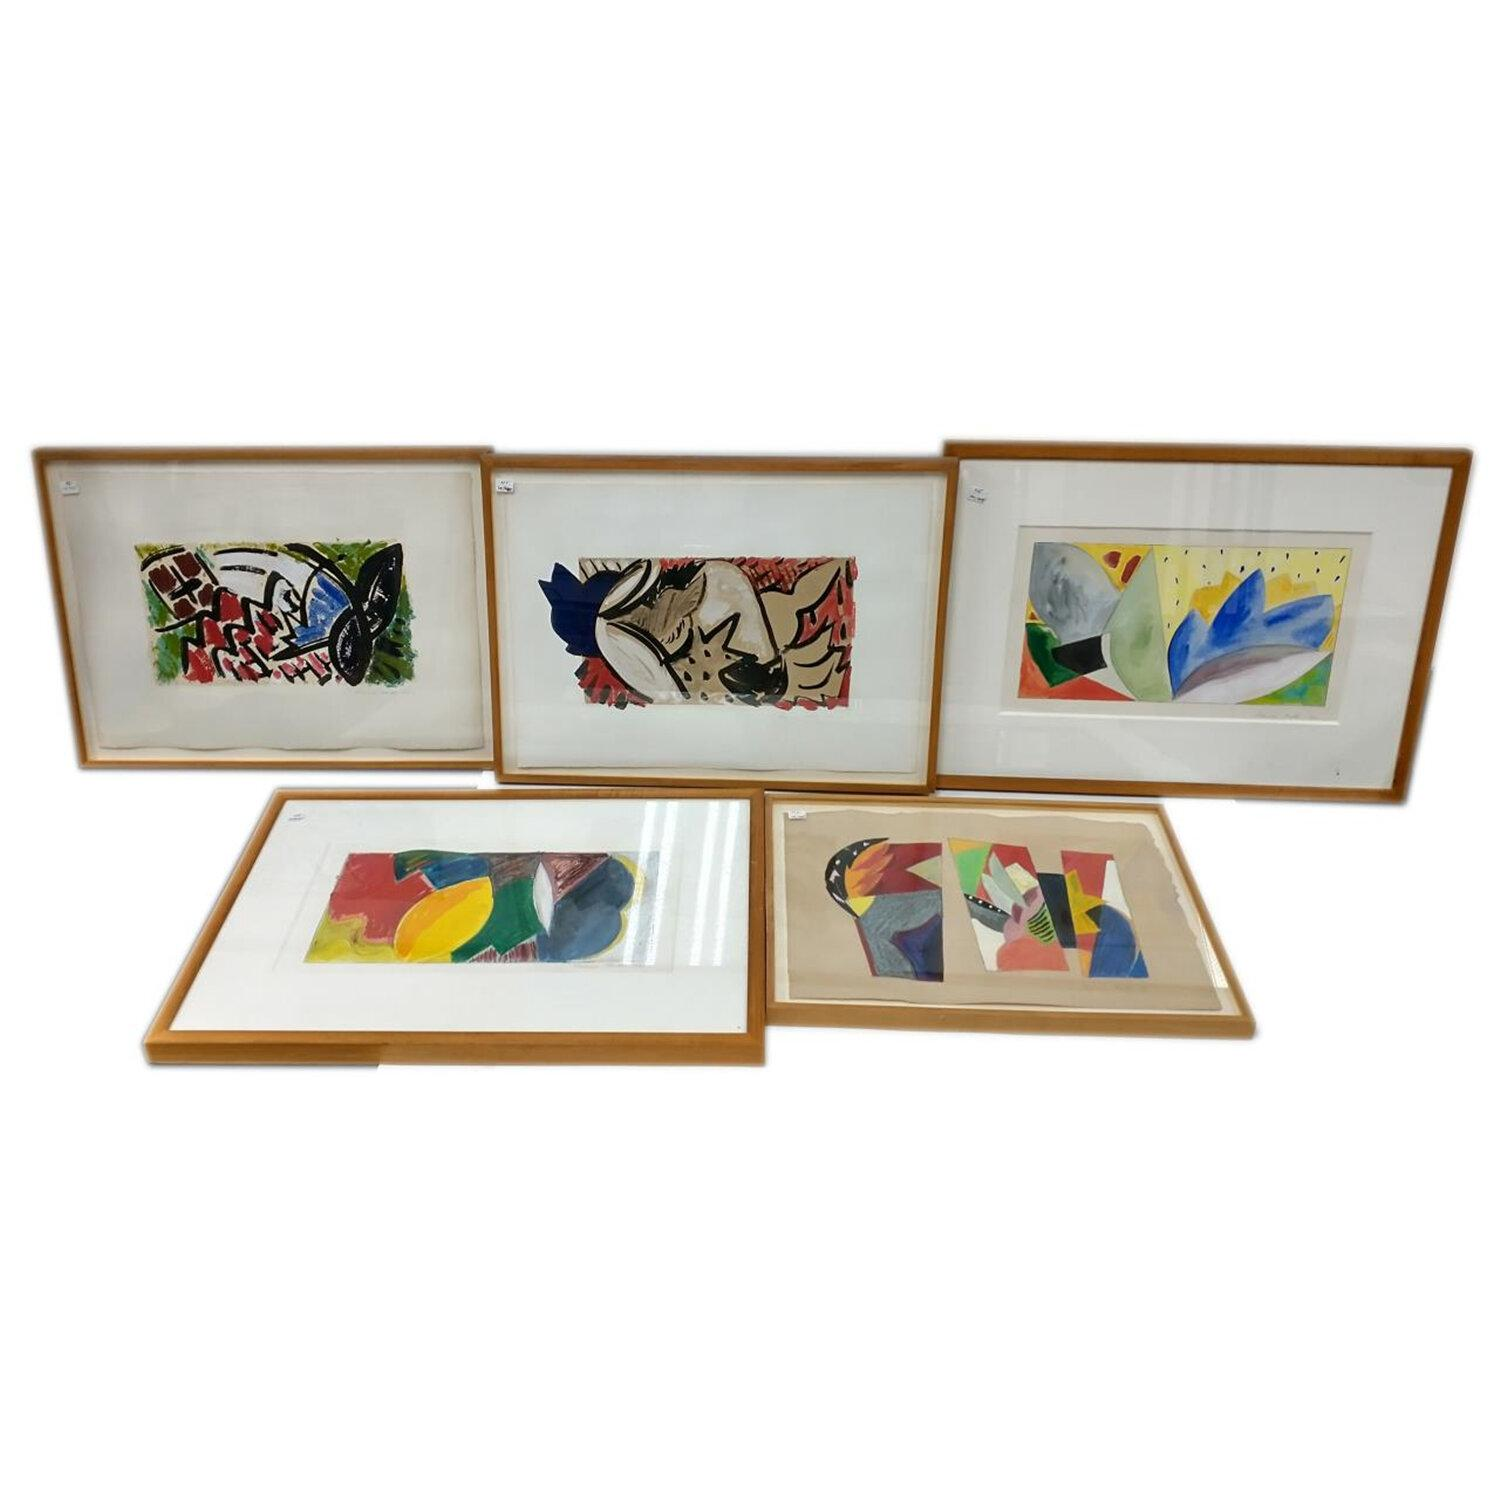 5 Paintings Mixed Media on Paper by Frances Barth